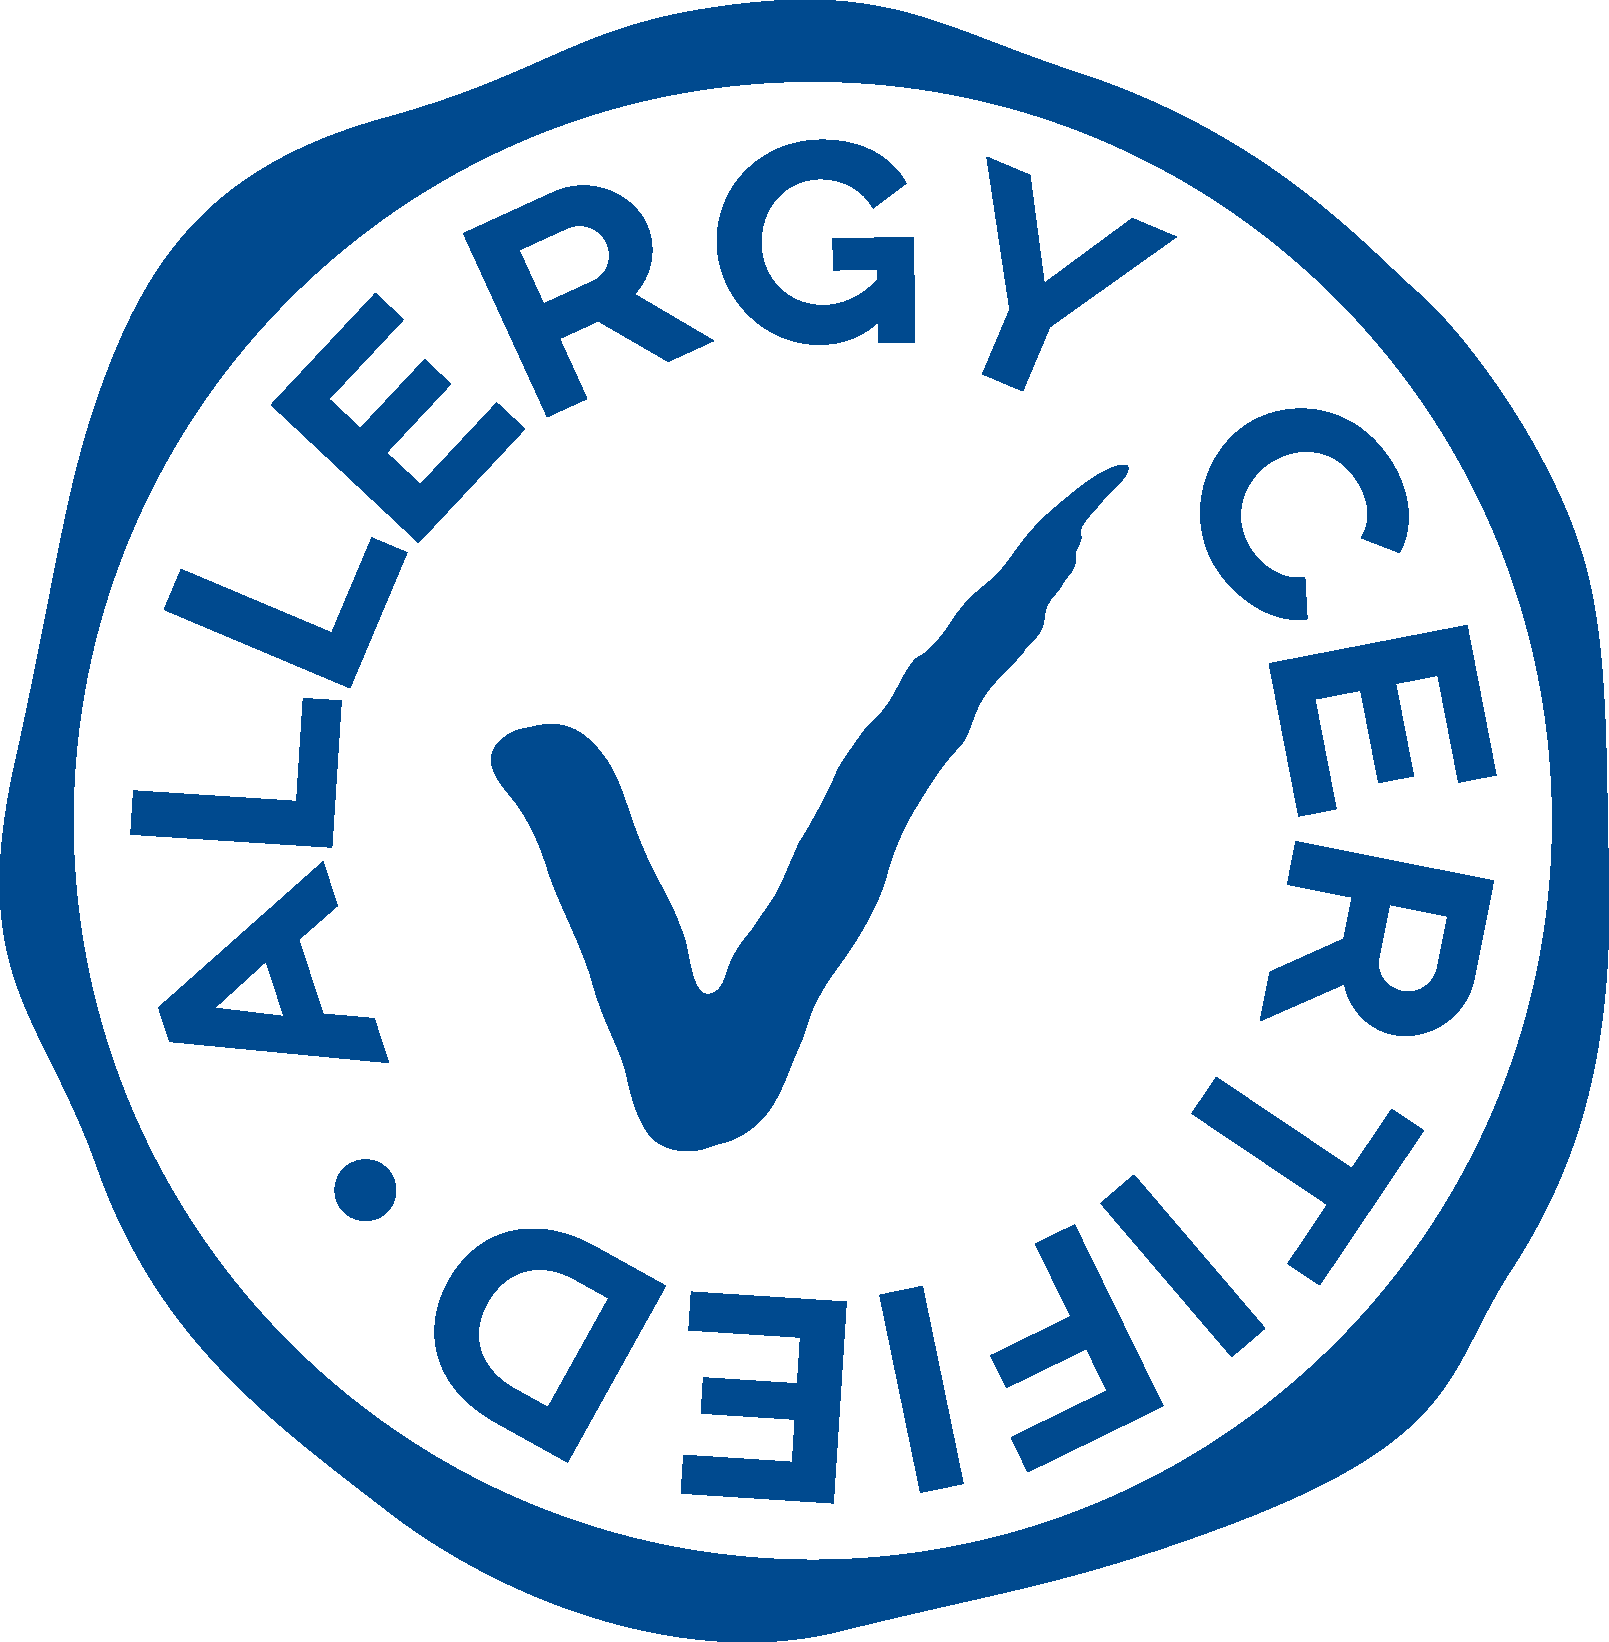 allergy-certified.png